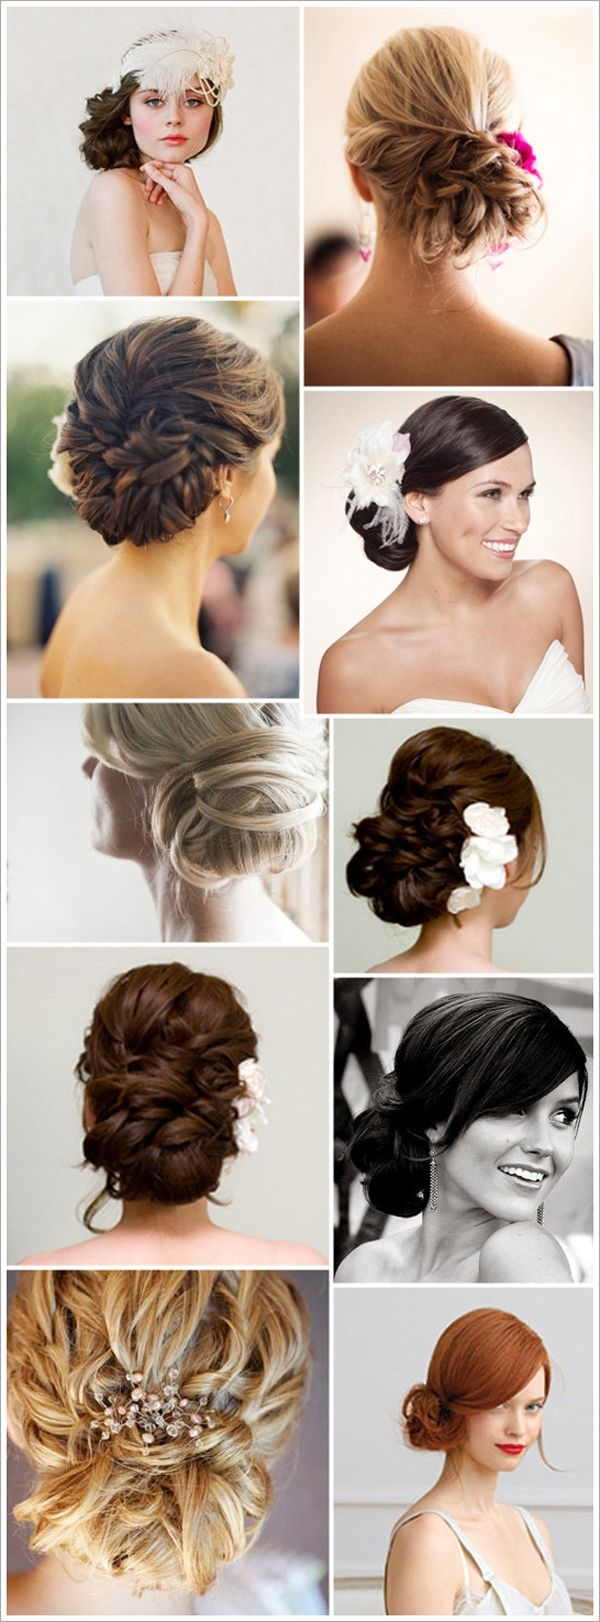 @Michelle Flynn Hendrick, I really like some of these. I think you would look good with a low, textured bun pulled a bit to the side so you can see it from the front